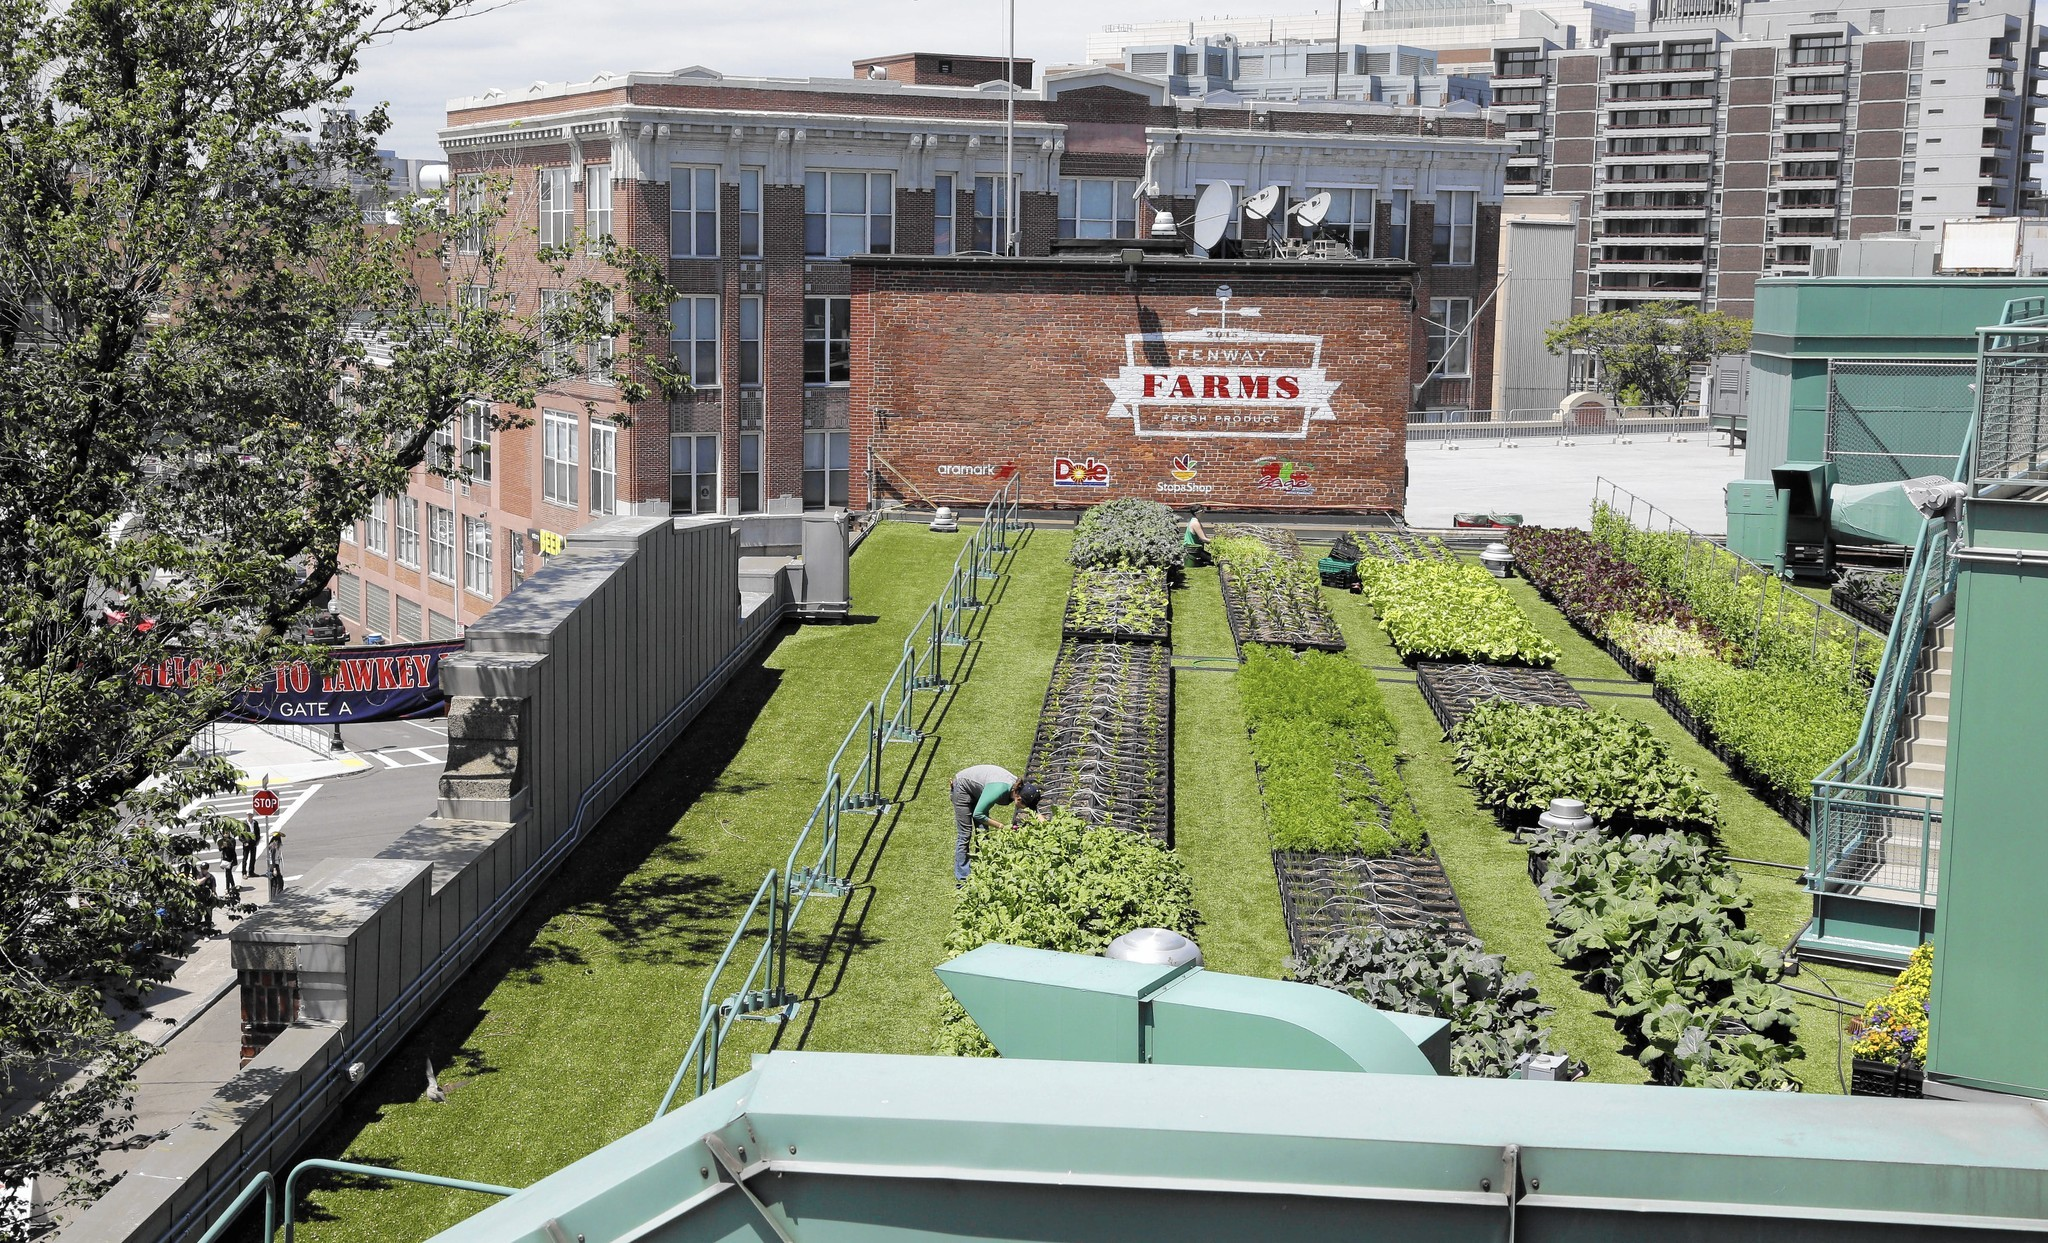 Fenway Has It S Own Farm System On The Roof Hartford